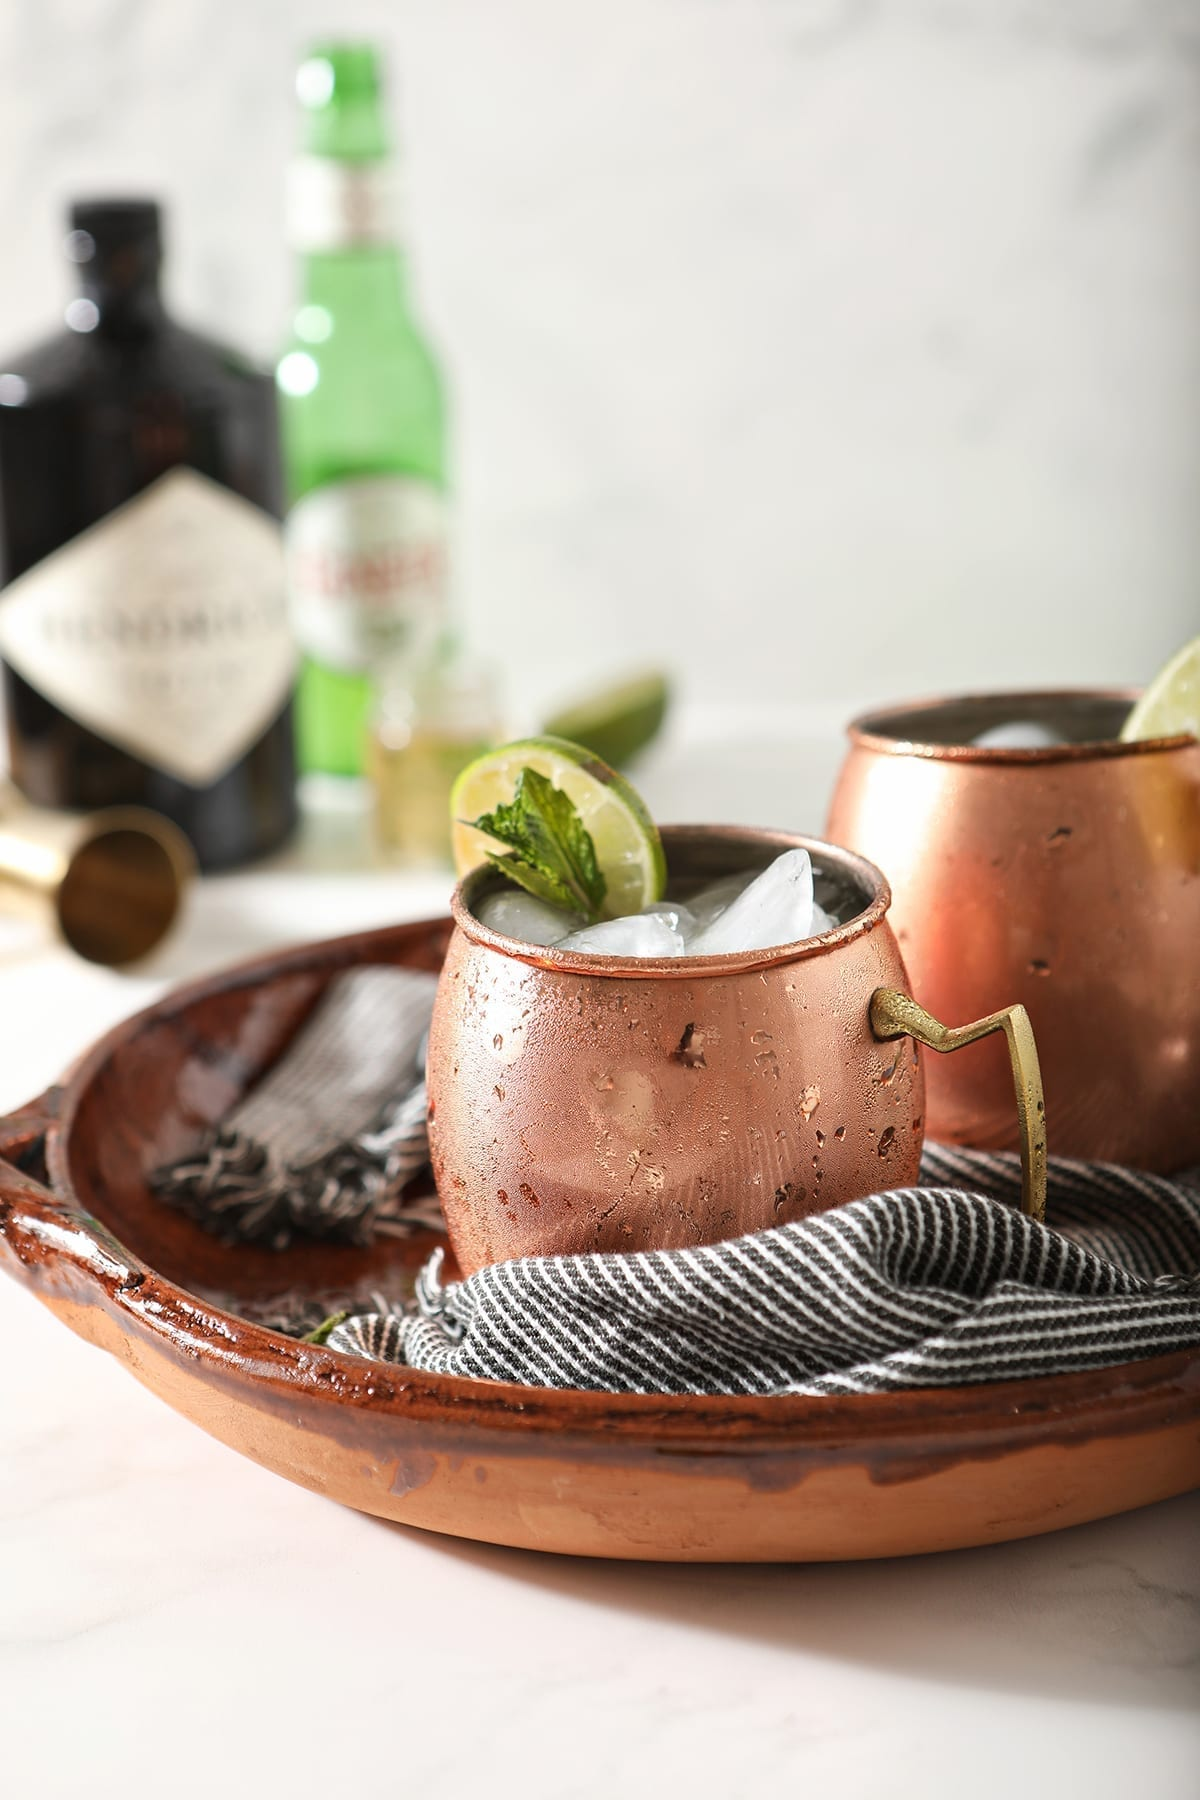 Two copper mugs garnished with lime rounds and mint are shown in a brown serving tray holding Gin Gin Mules